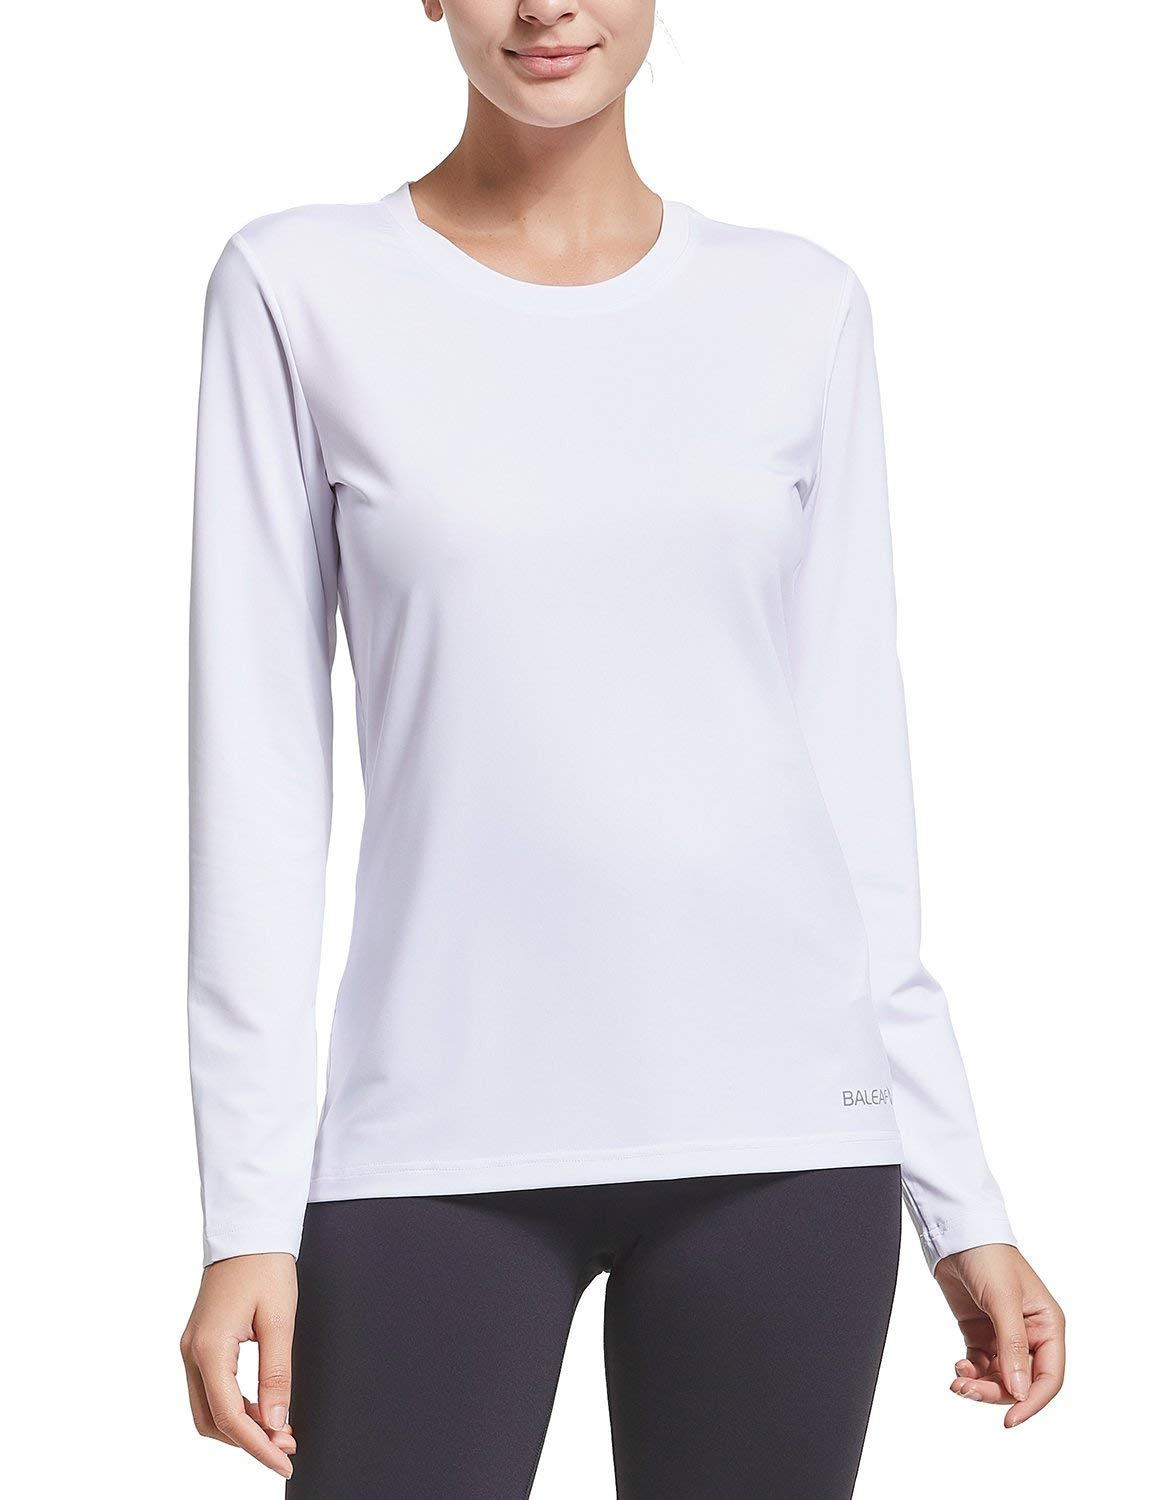 BALEAF Women's Long Sleeve T-Shirt Quick Dry Running Workout Shirts White Size XS by BALEAF